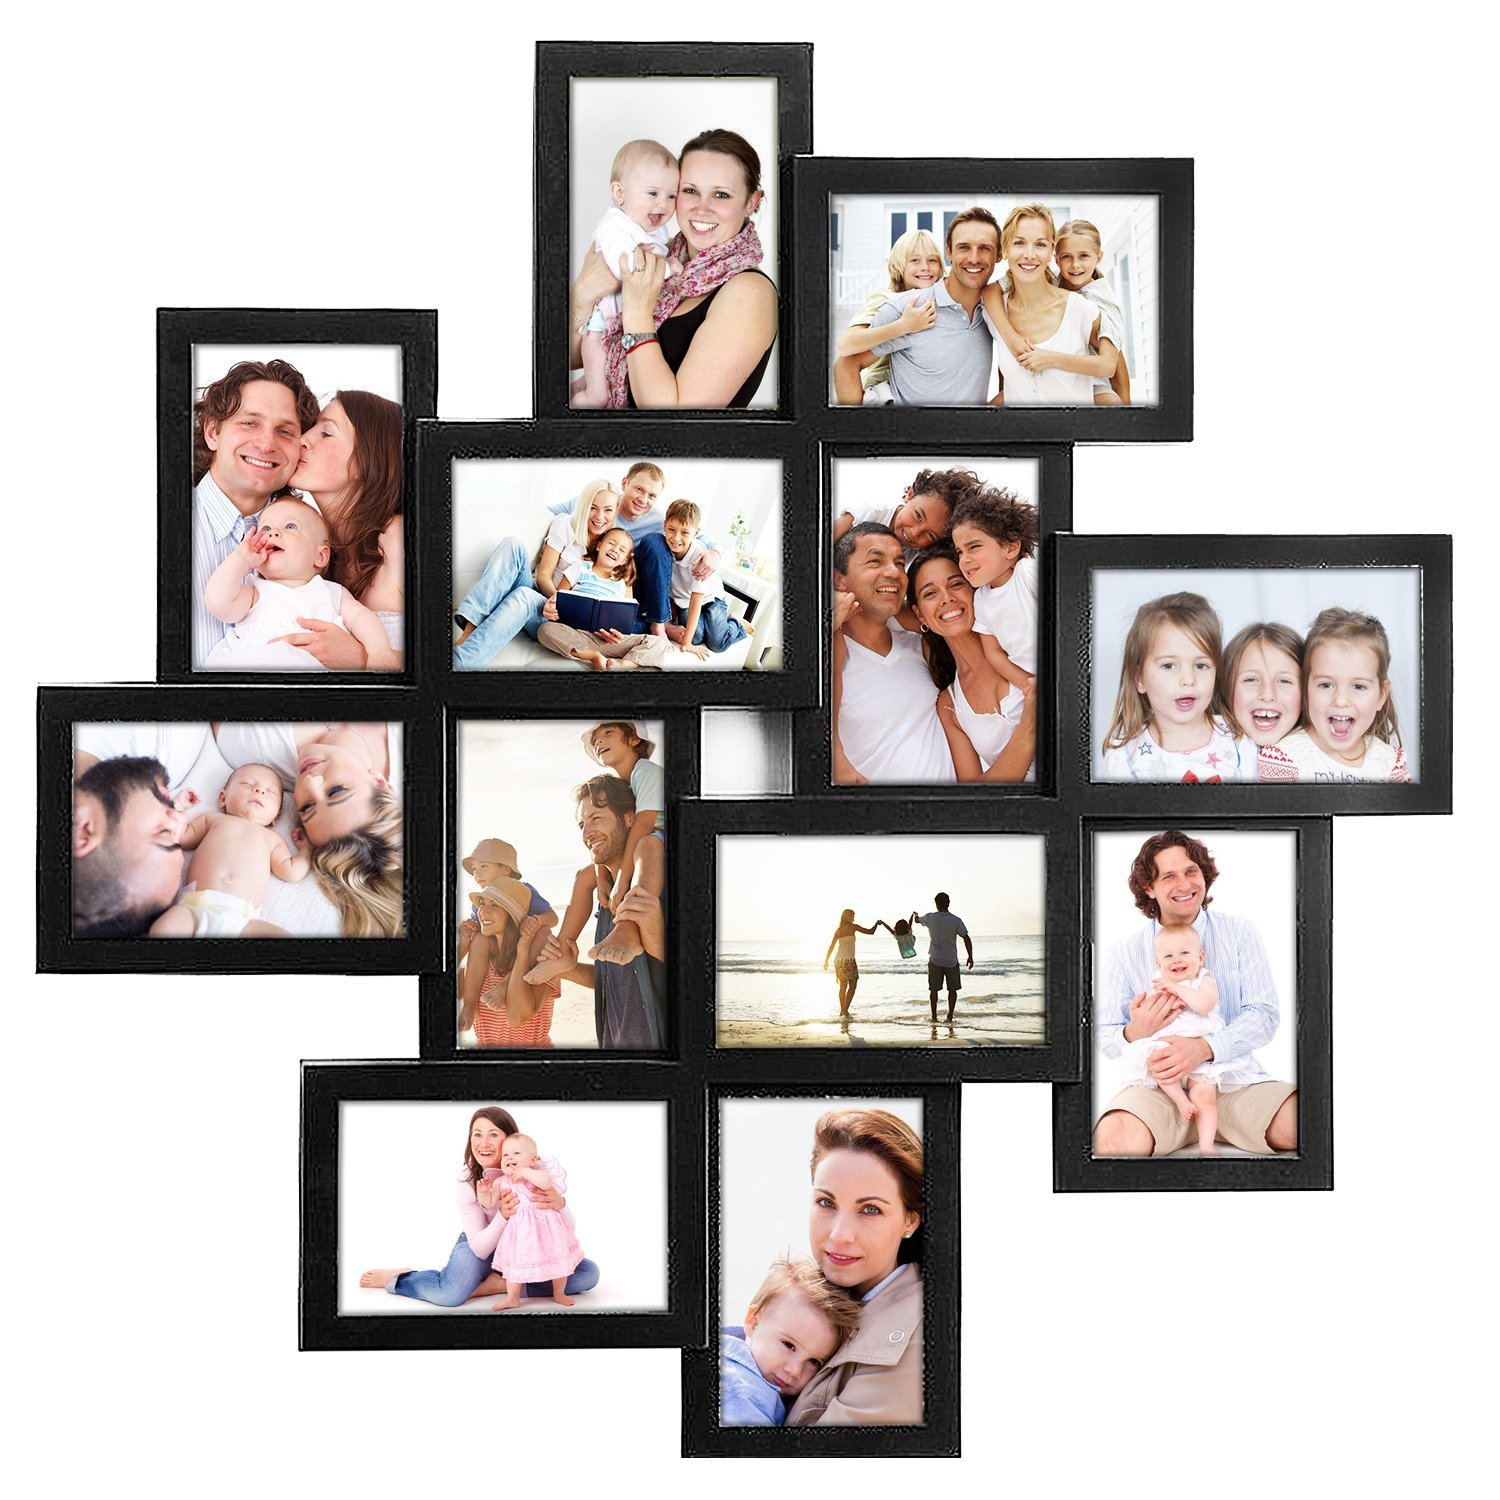 DL furniture - Photo Frame 24x24 Square Black PVC Picture Frame Selfie Gallery Collage Wall Hanging For 6x4 Photo - 12 Photo Sockets - Wall Mounting Design